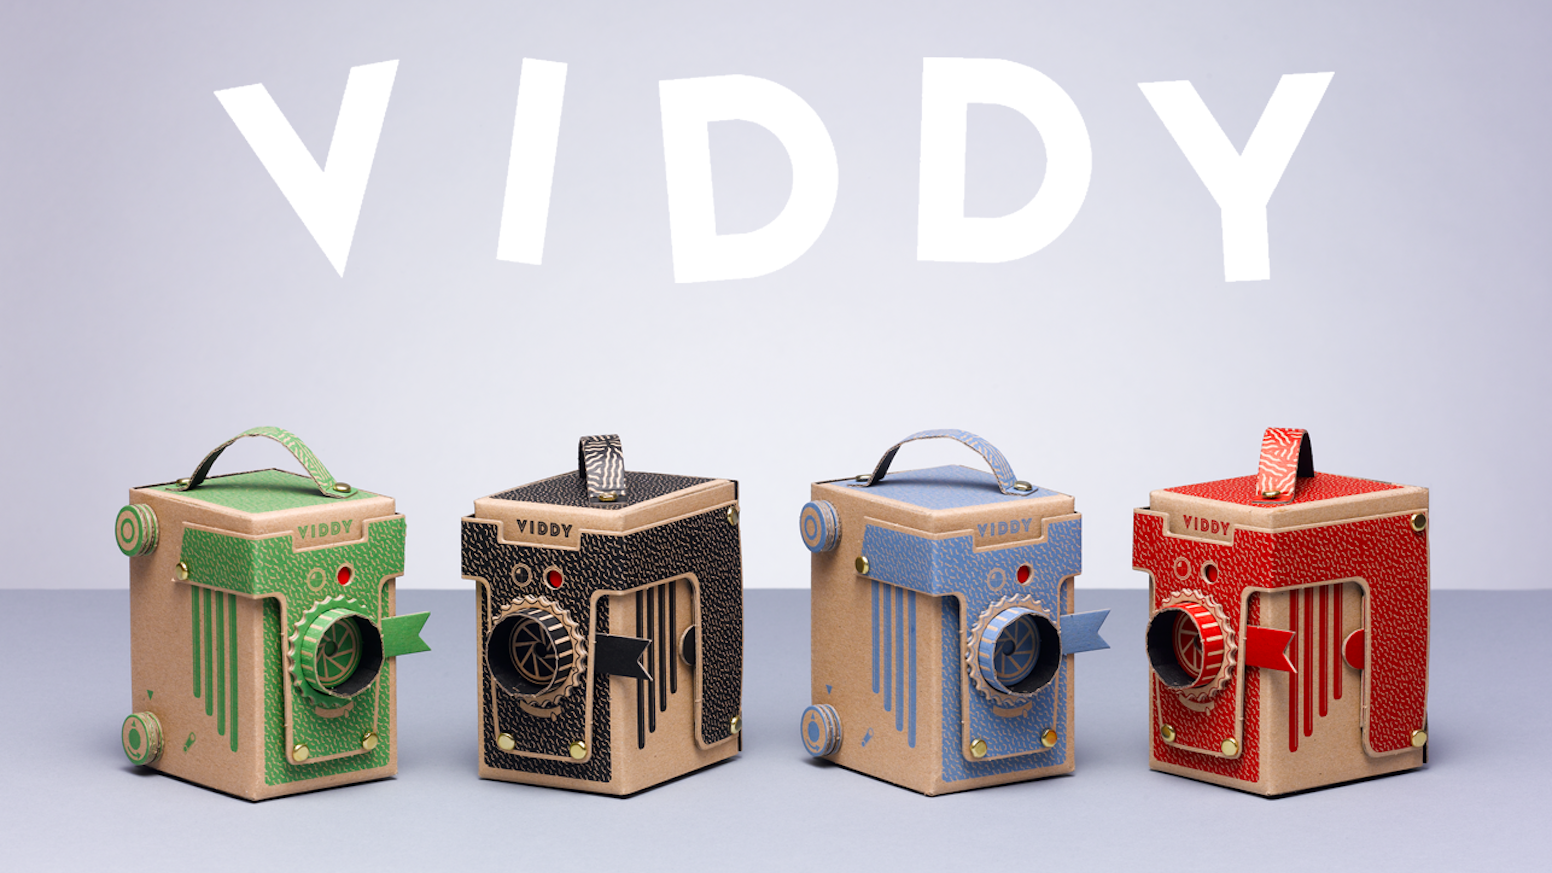 VIDDY is the world's cutest DIY medium format & 35mm pinhole camera. It's fun, educational and takes less than 30 minutes to make!